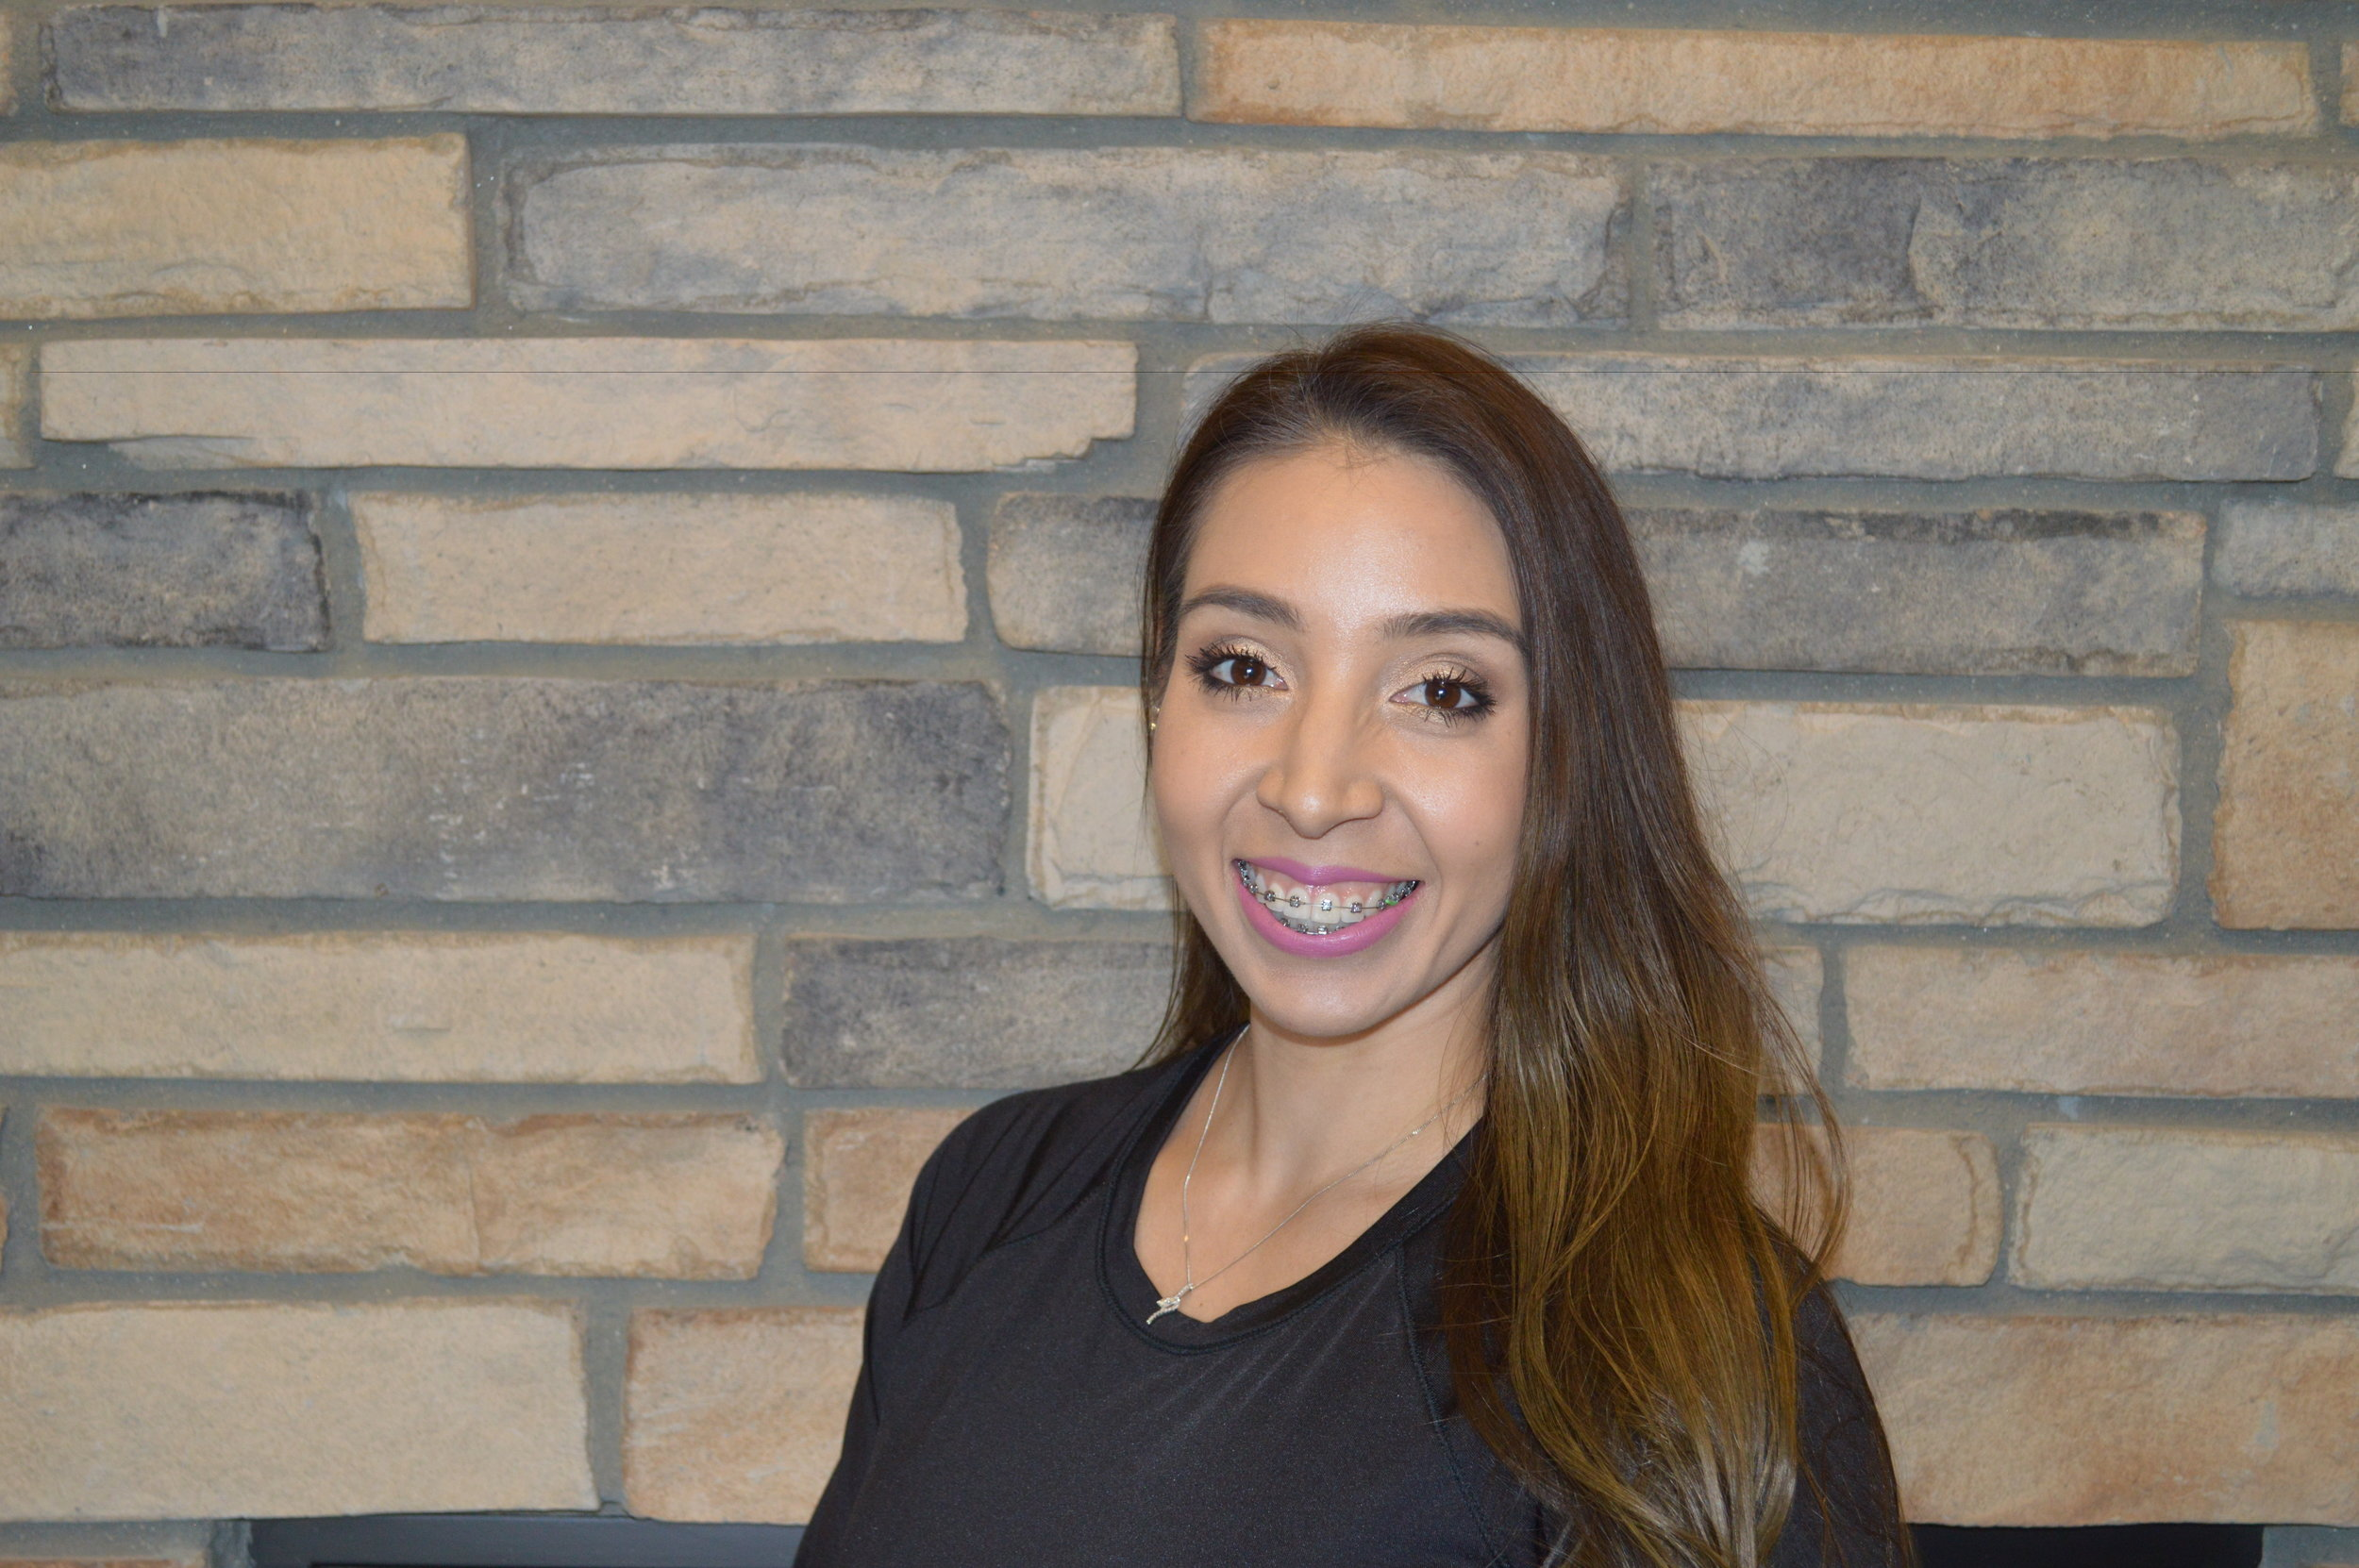 Diandra Sanchez - Paramedical AestheticianDiandra joined RMA in 2018. She graduated from IBMC in 2014, and received her laser certification from the National Institute of Medical Aesthetics in 2015. She is a skilled aesthetician that performs a variety of treatments from facials and laser work to skin tightening and dermaplane. Diandra is a dedicated fan of baseball and wrestling. She loves the Colorado Rockies, but saves her full devotion for her children's teams. Diandra is passionate about helping others feel confident in their own skin.